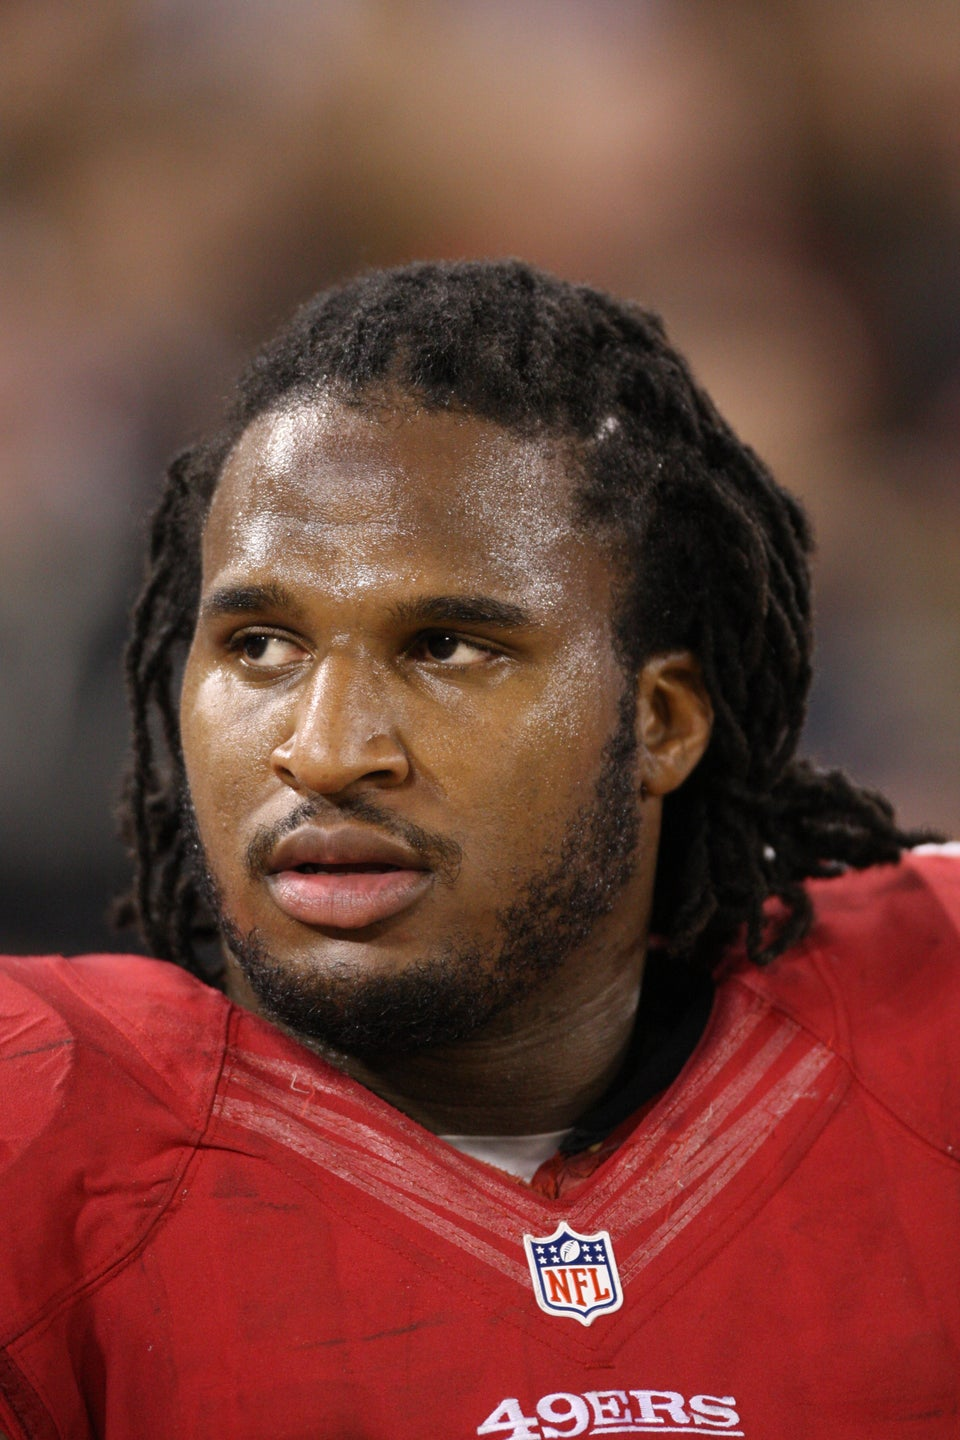 Disturbing Video Shows Former NFL Star Ray McDonald Terrorizing His Child's Mother As She Holds Their Baby